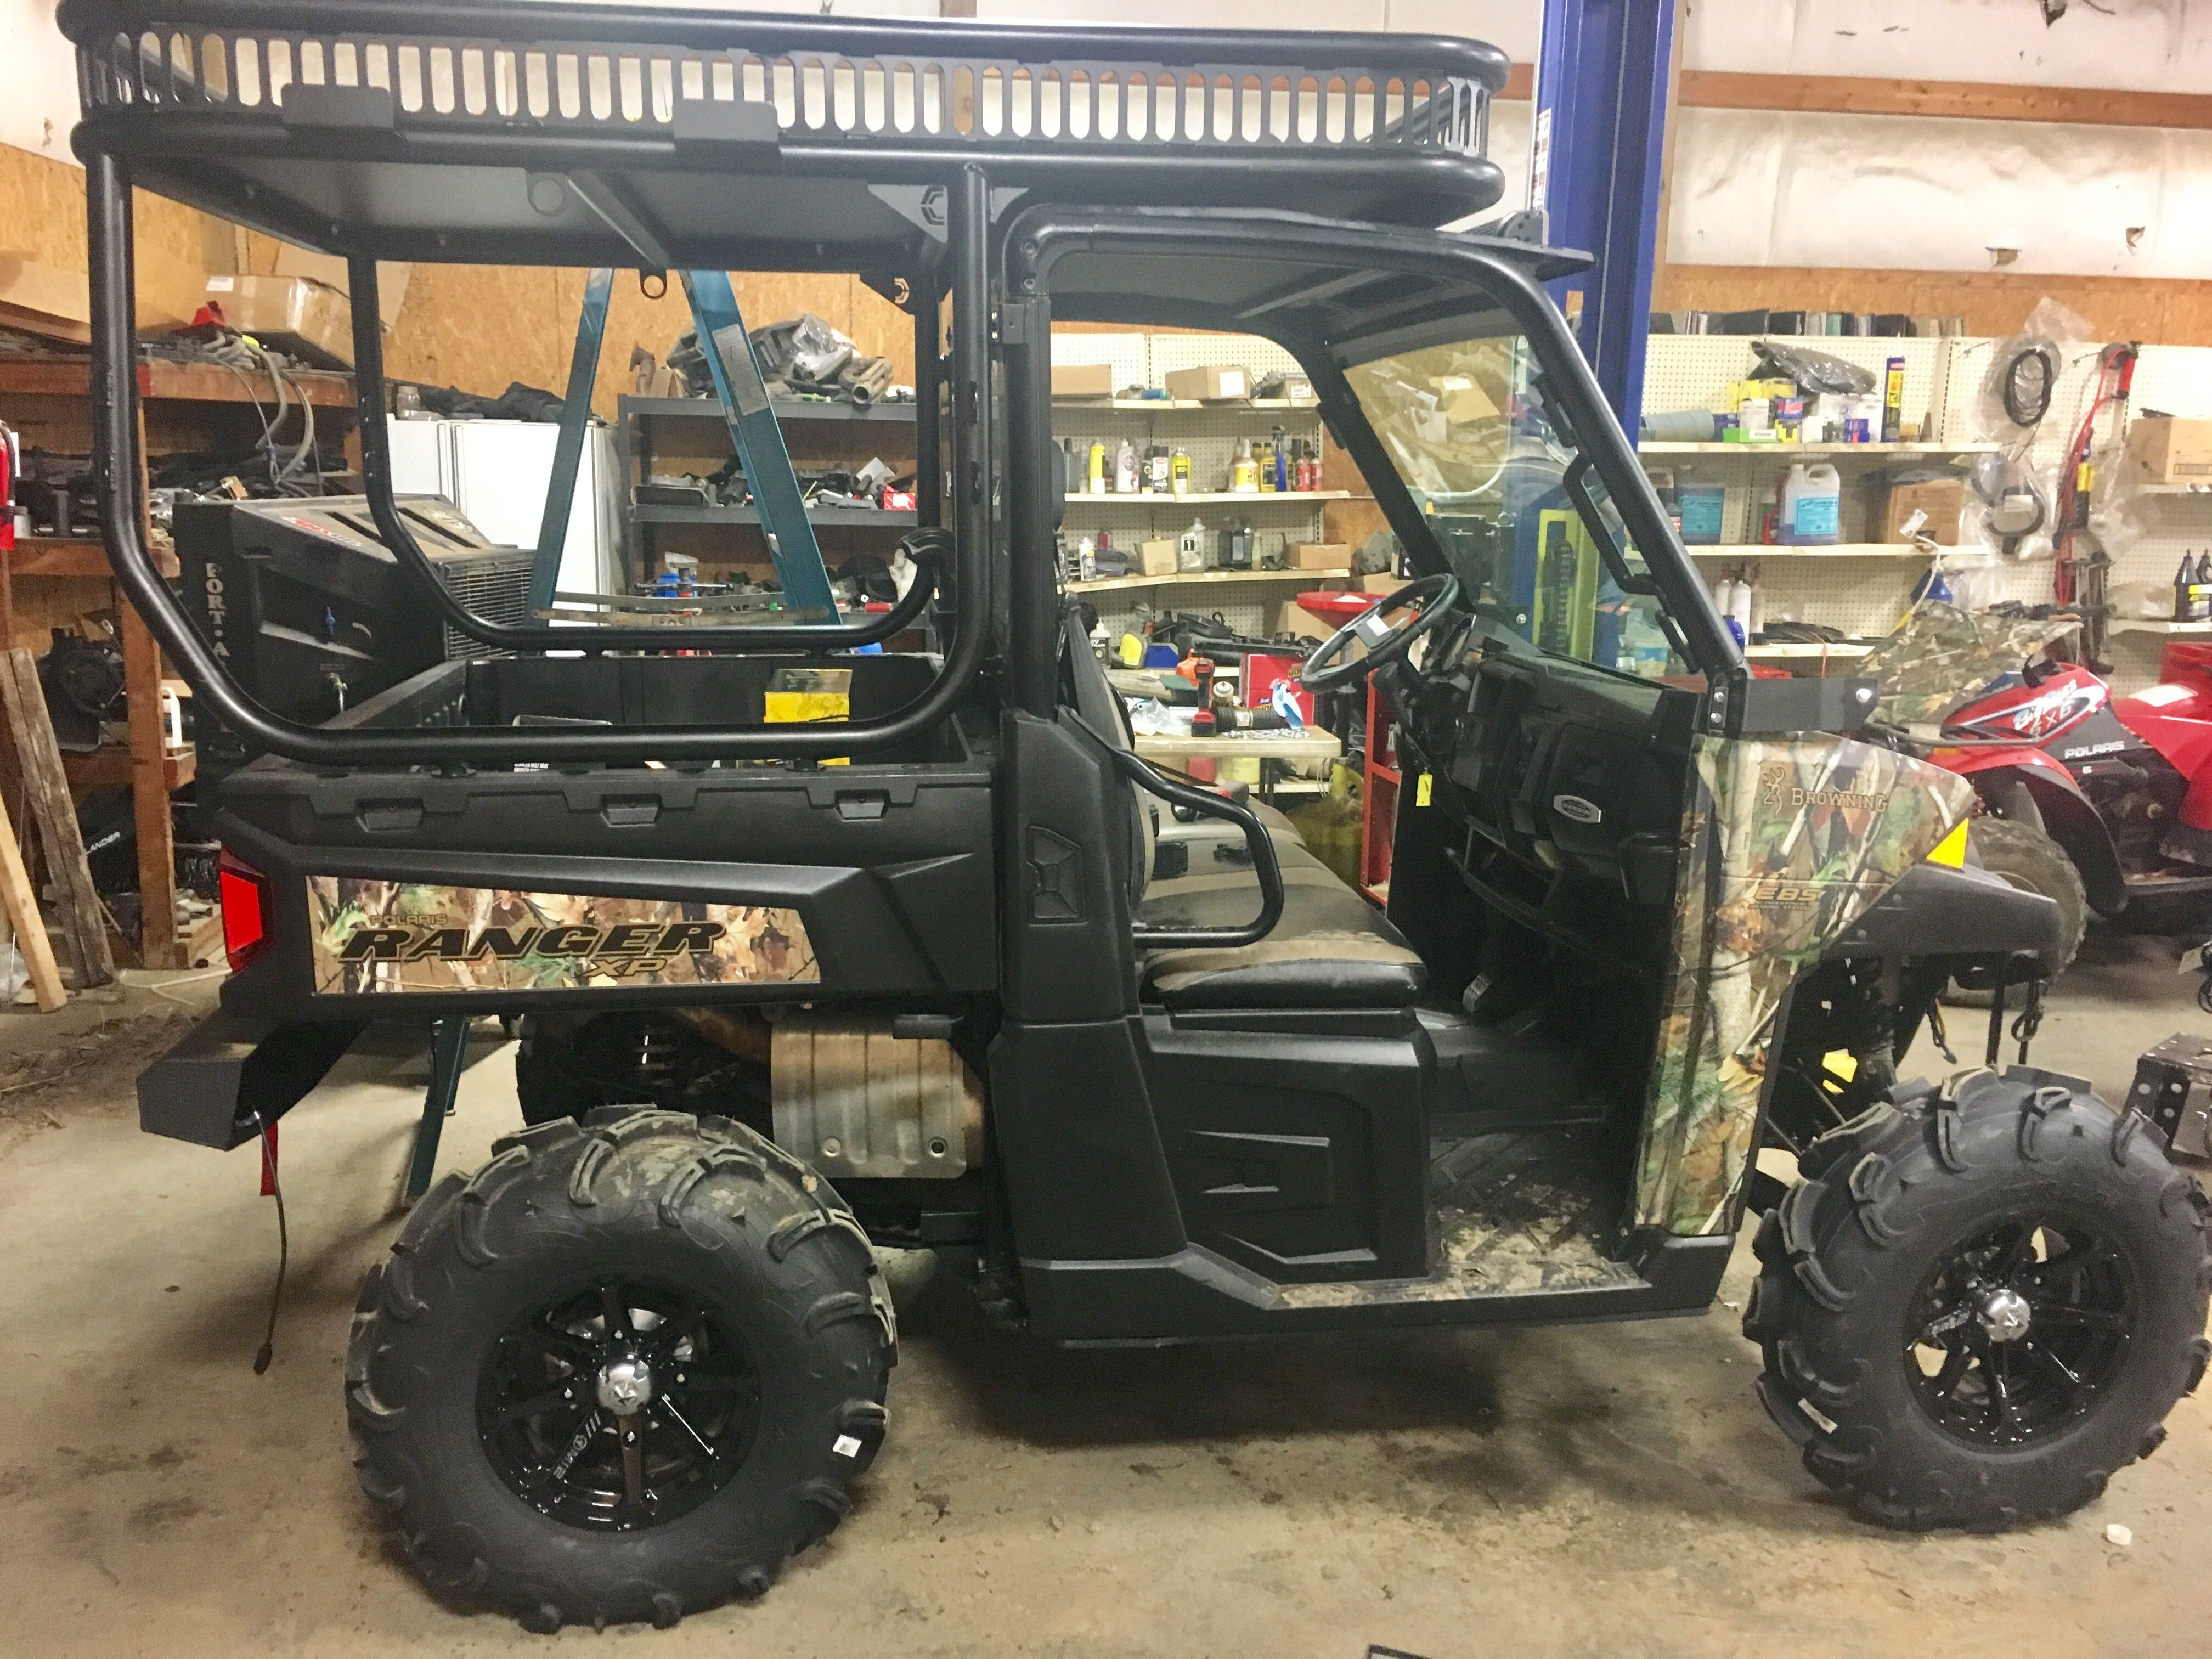 Pin By Cryptocage Com On Duck Rig Polaris Ranger Roll Cage Extension Polaris Ranger Polaris Ranger Rack